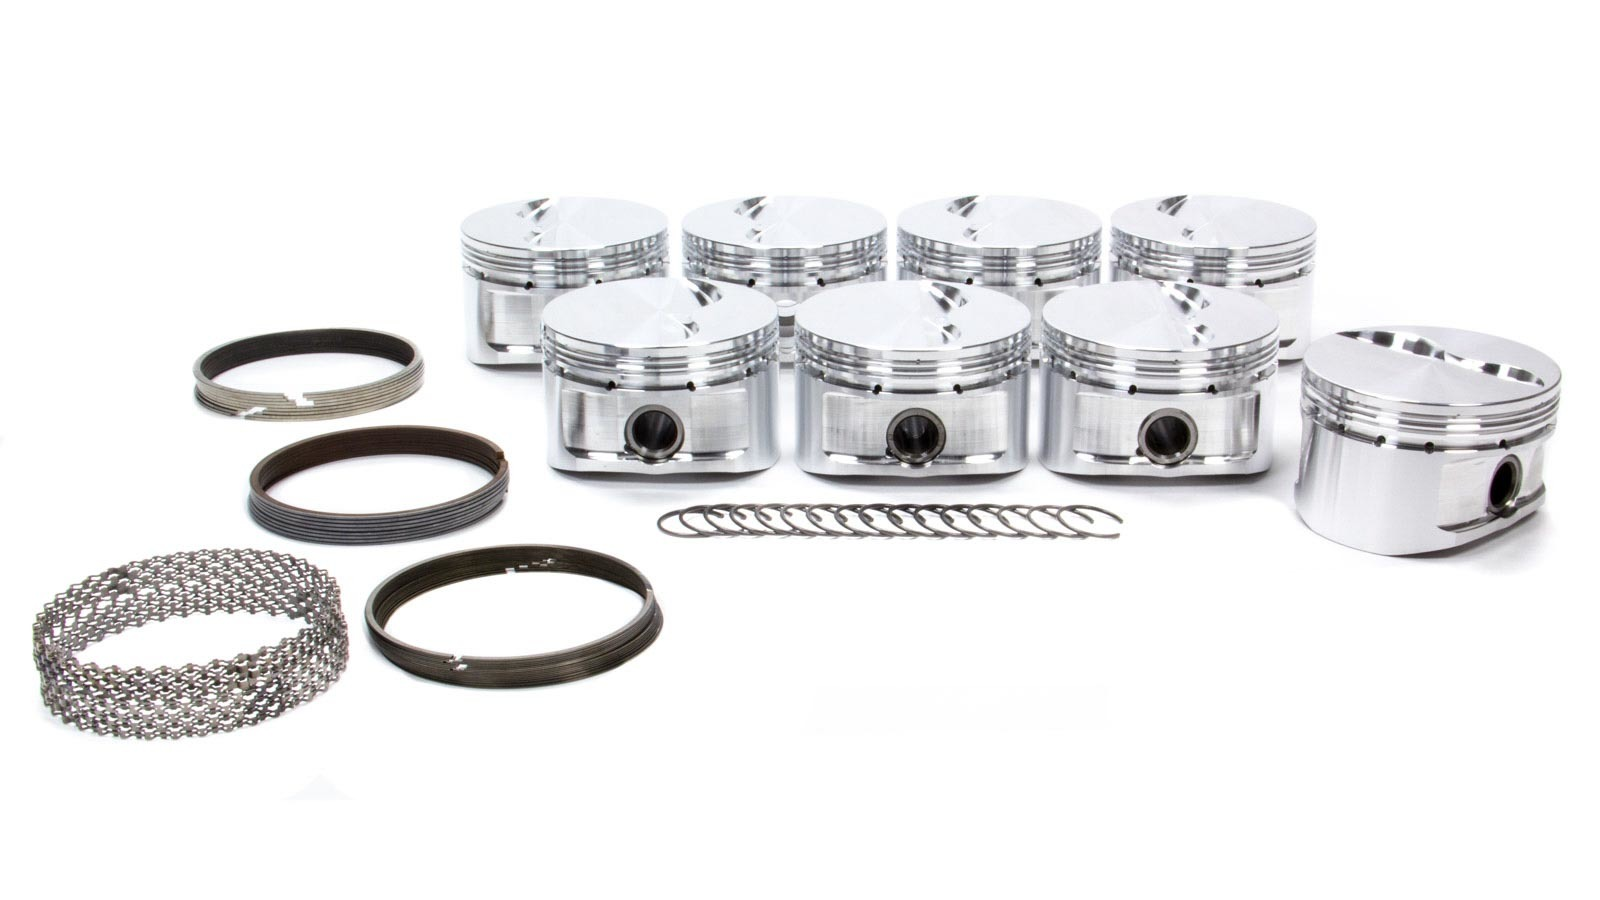 CP Pistons S2031-8 Piston, 305 Sprint Flat Top, Forged, 3.766 in Bore, 1.5 x 1.5 x 4.0 mm Ring Grooves, Minus 3.1 cc, Small Block Chevy, Set of 8